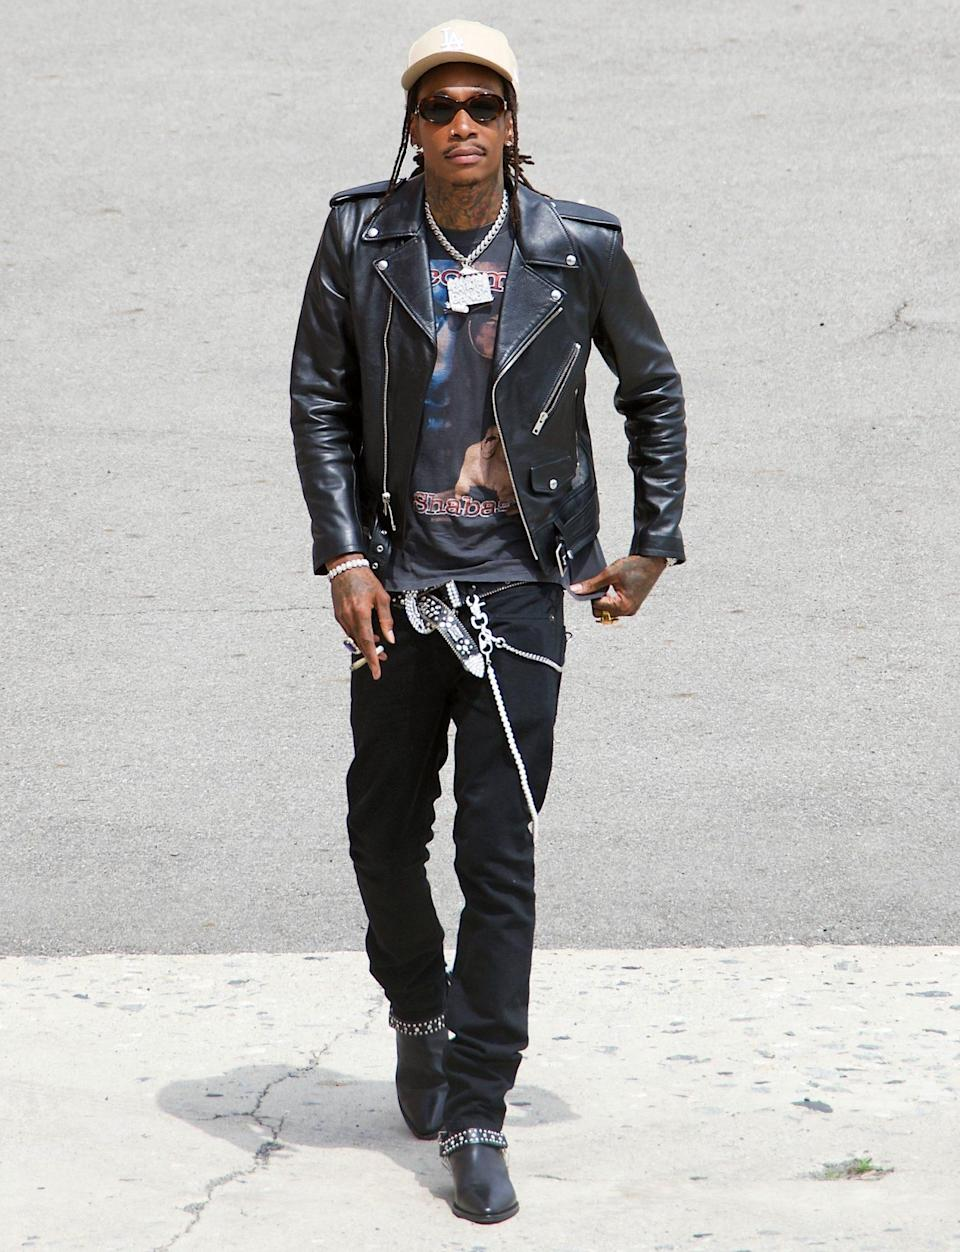 <p>Wiz Khalifa is seen on the set of HBO Max's new street fashion show <i>The Hype</i> on Monday in L.A.</p>